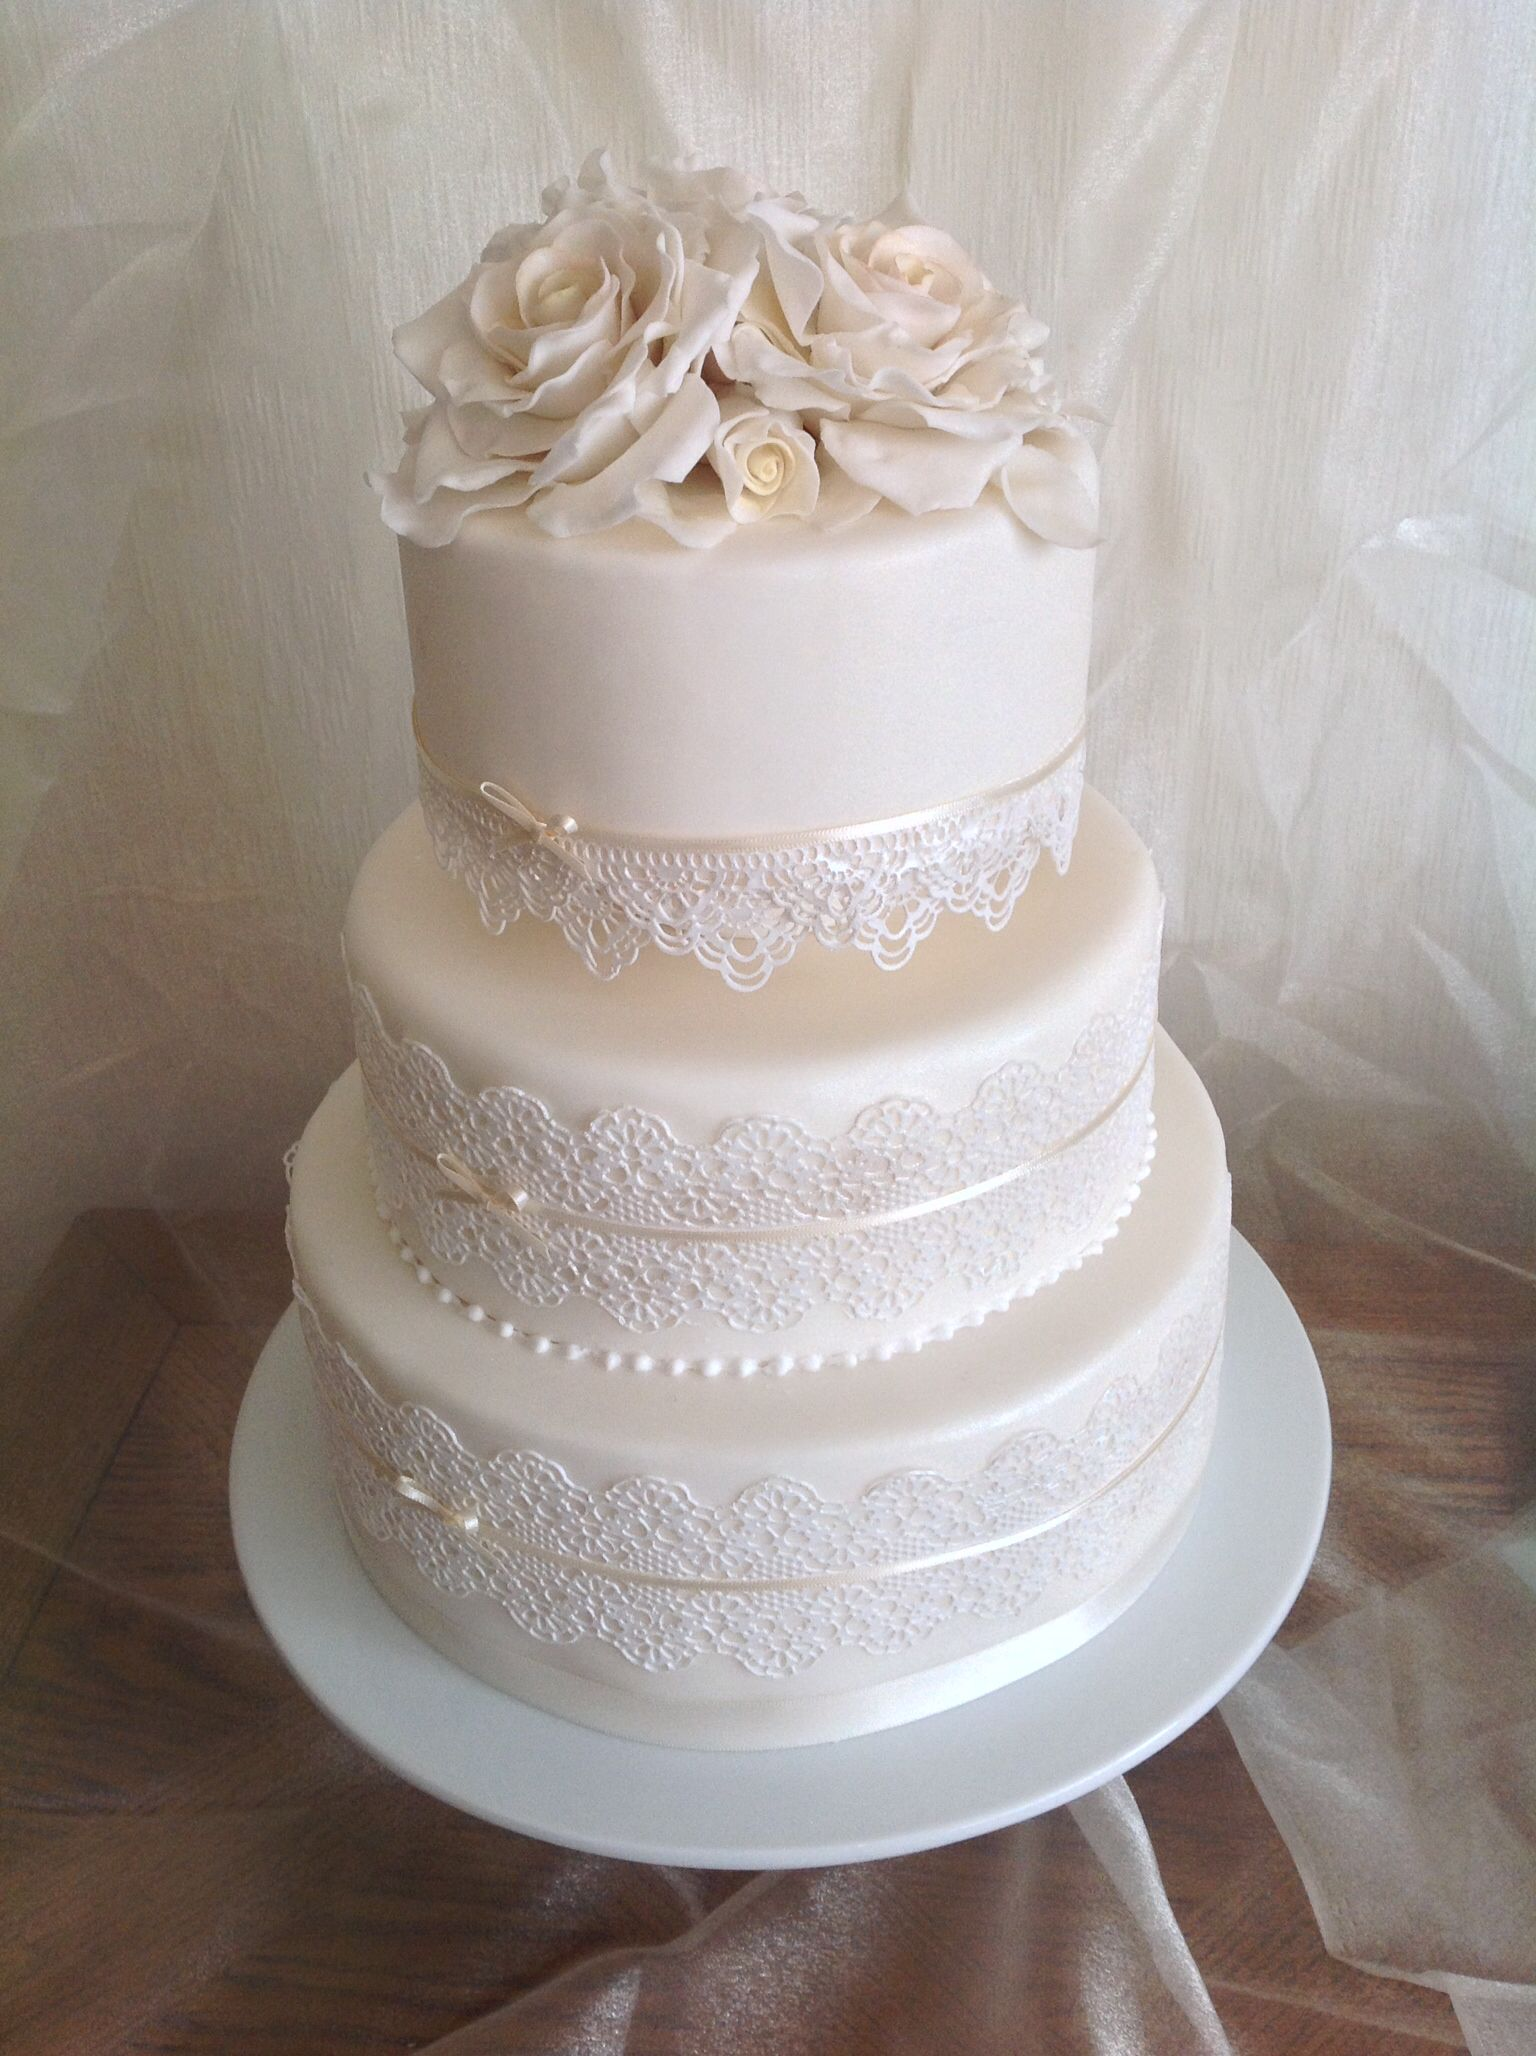 Wedding cake with edible lace and sugar roses designer cakes wedding cake with edible lace and sugar roses designer cakes junglespirit Choice Image